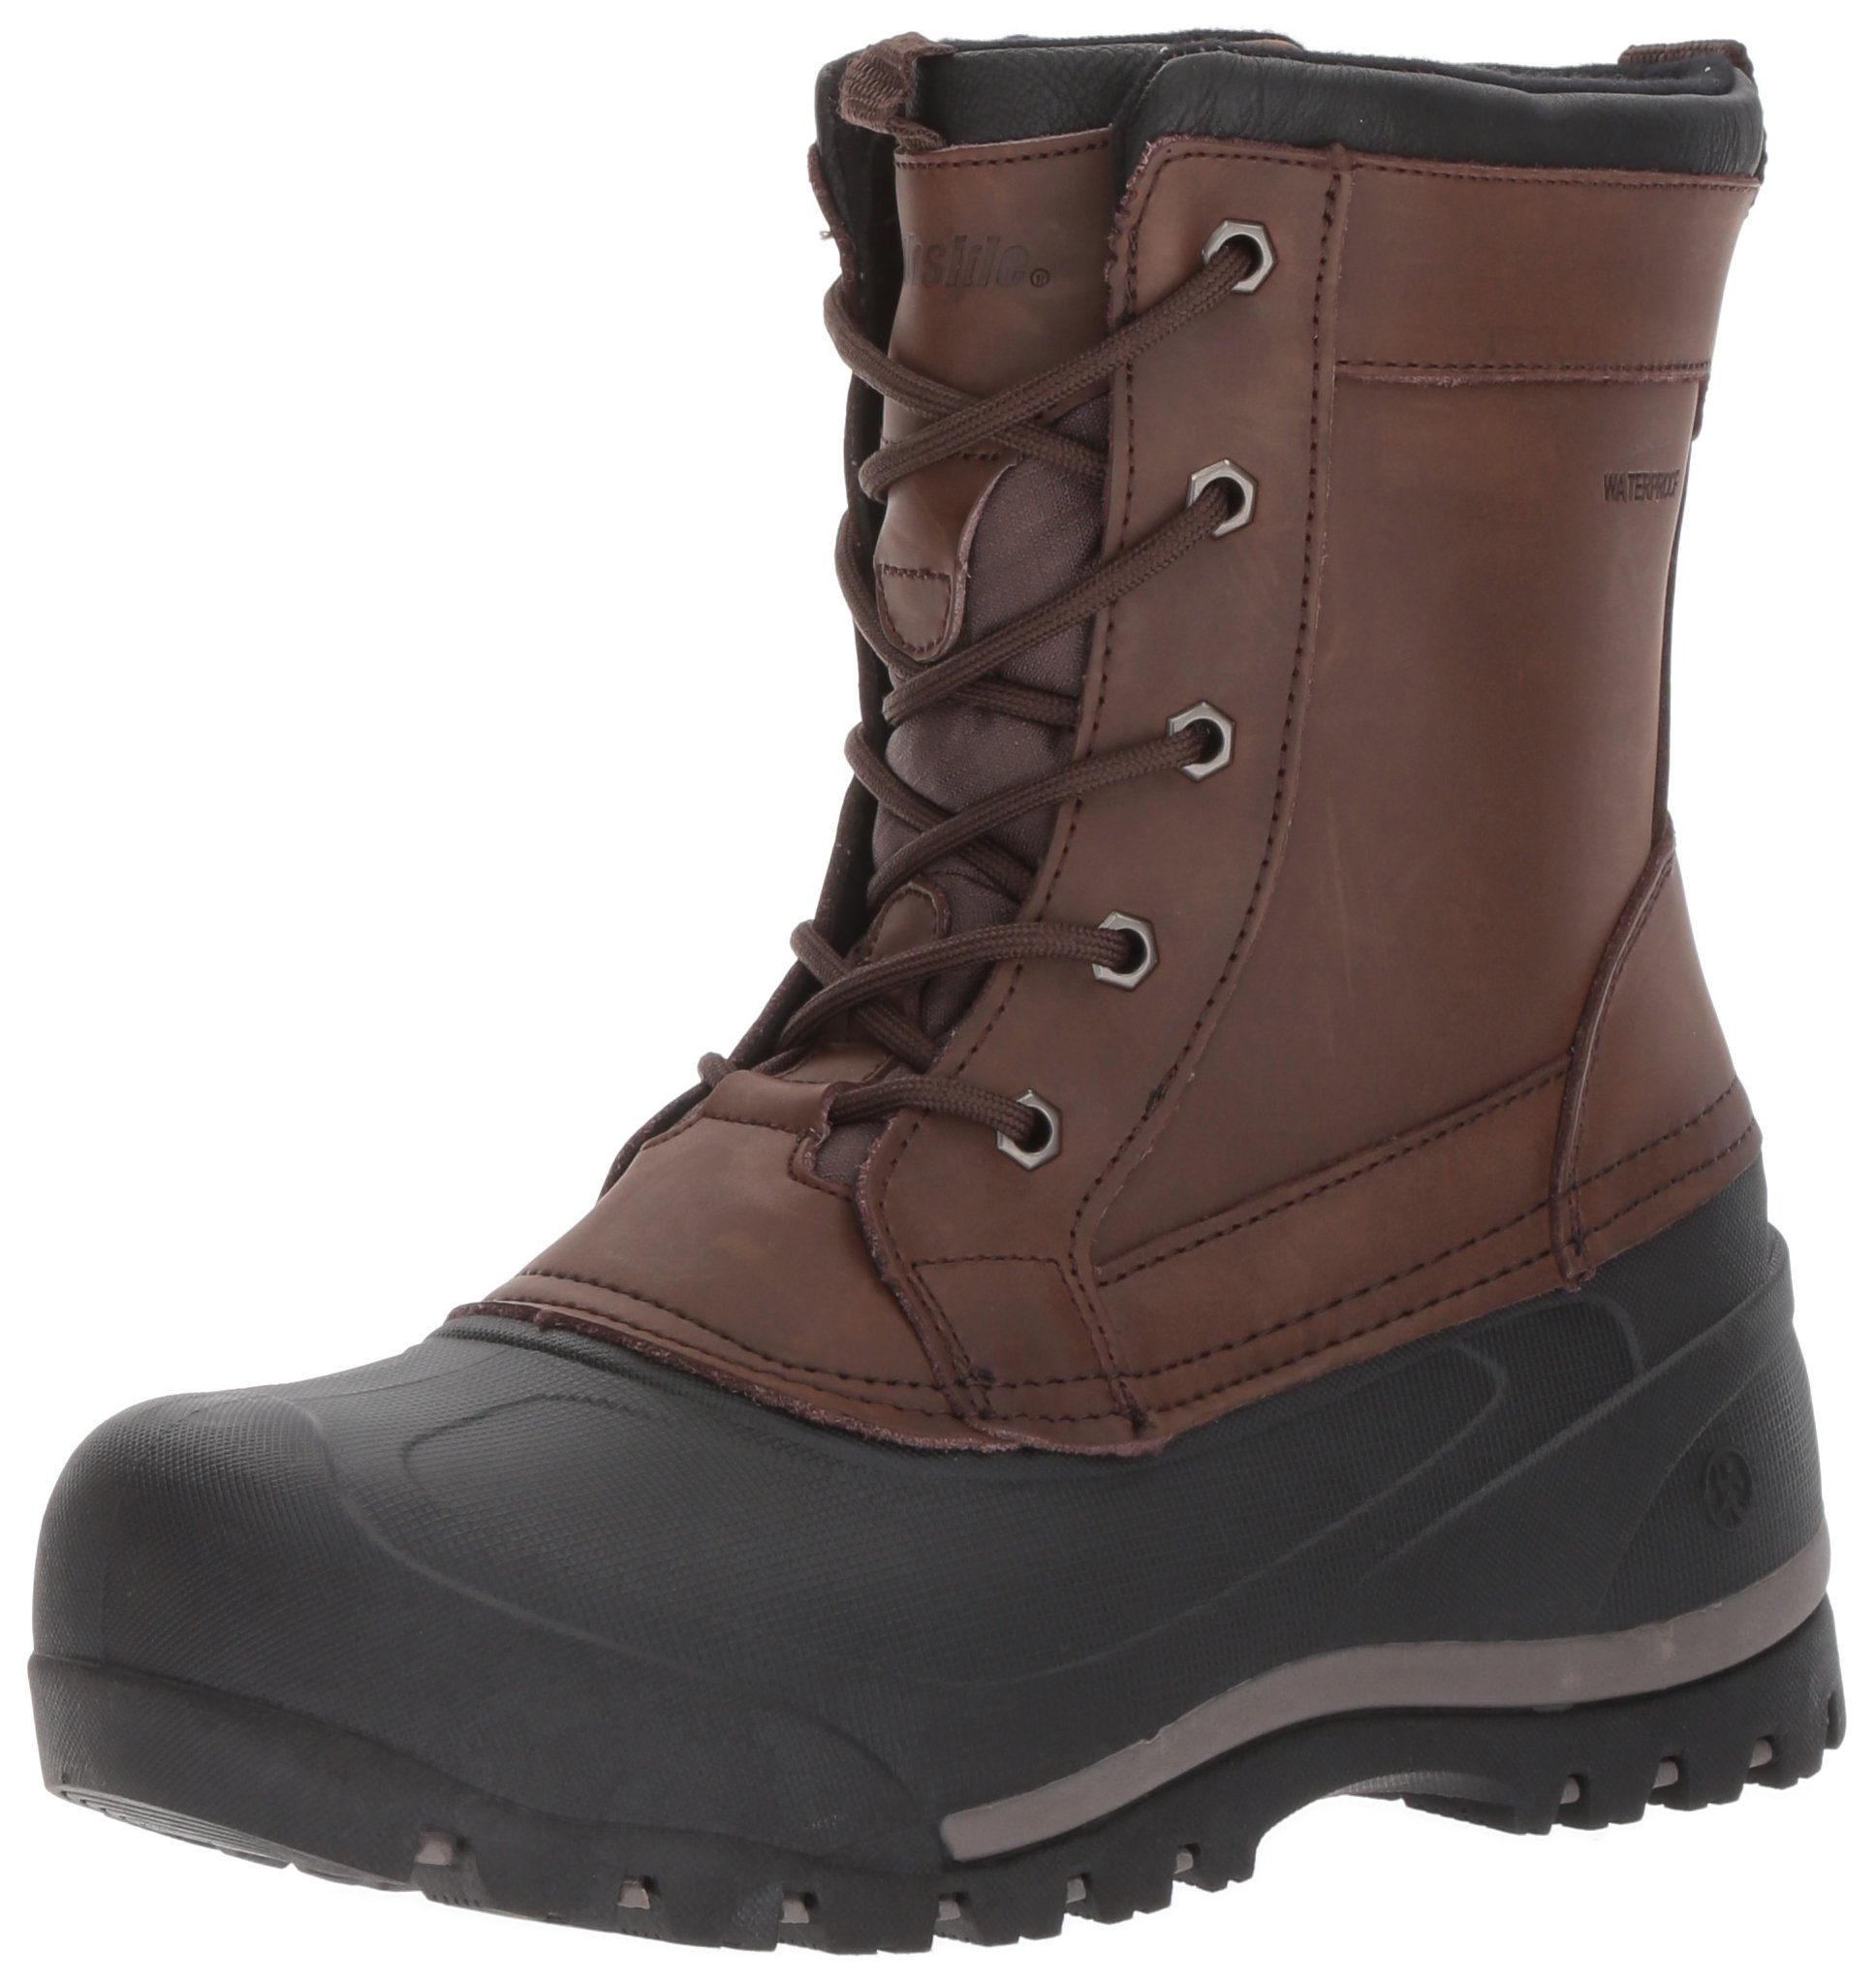 Northside Men's Cornice Snow Boot, Chocolate, 11 M US